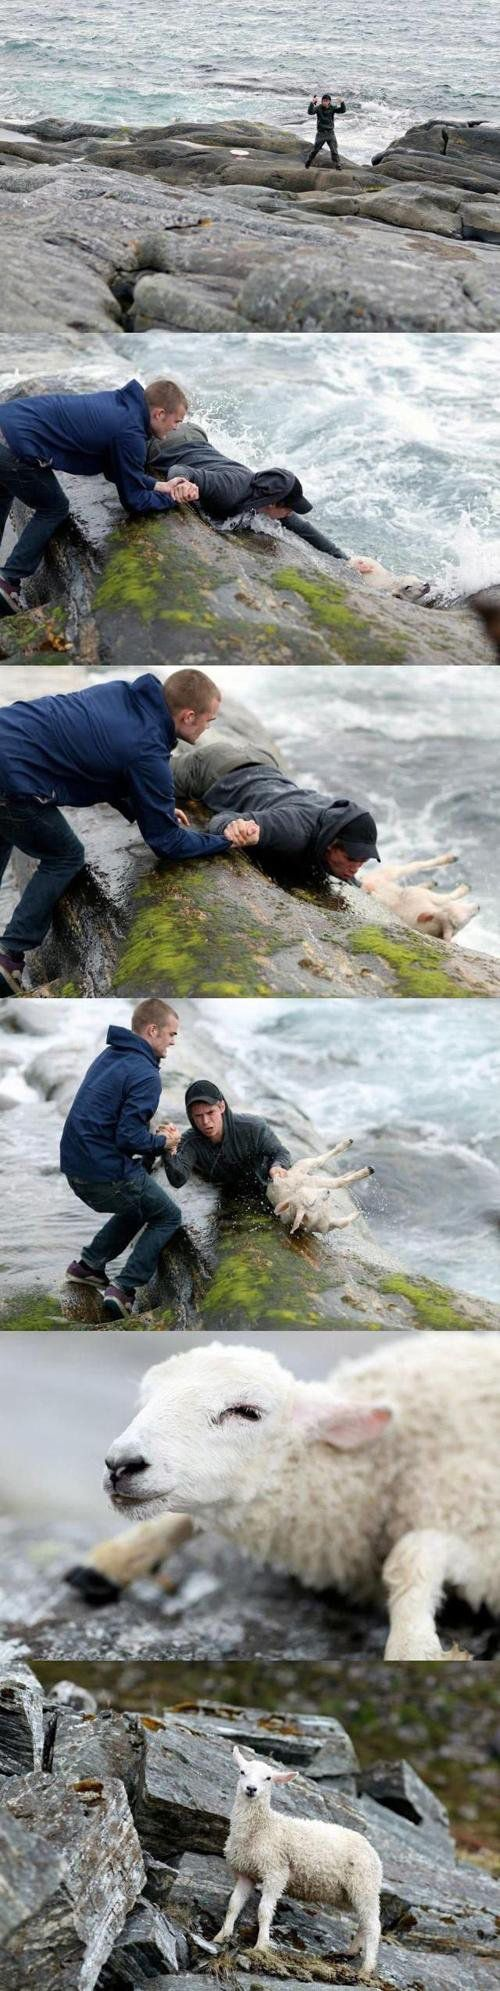 Two Norwegian men rescuing a sheep from the ocean :)